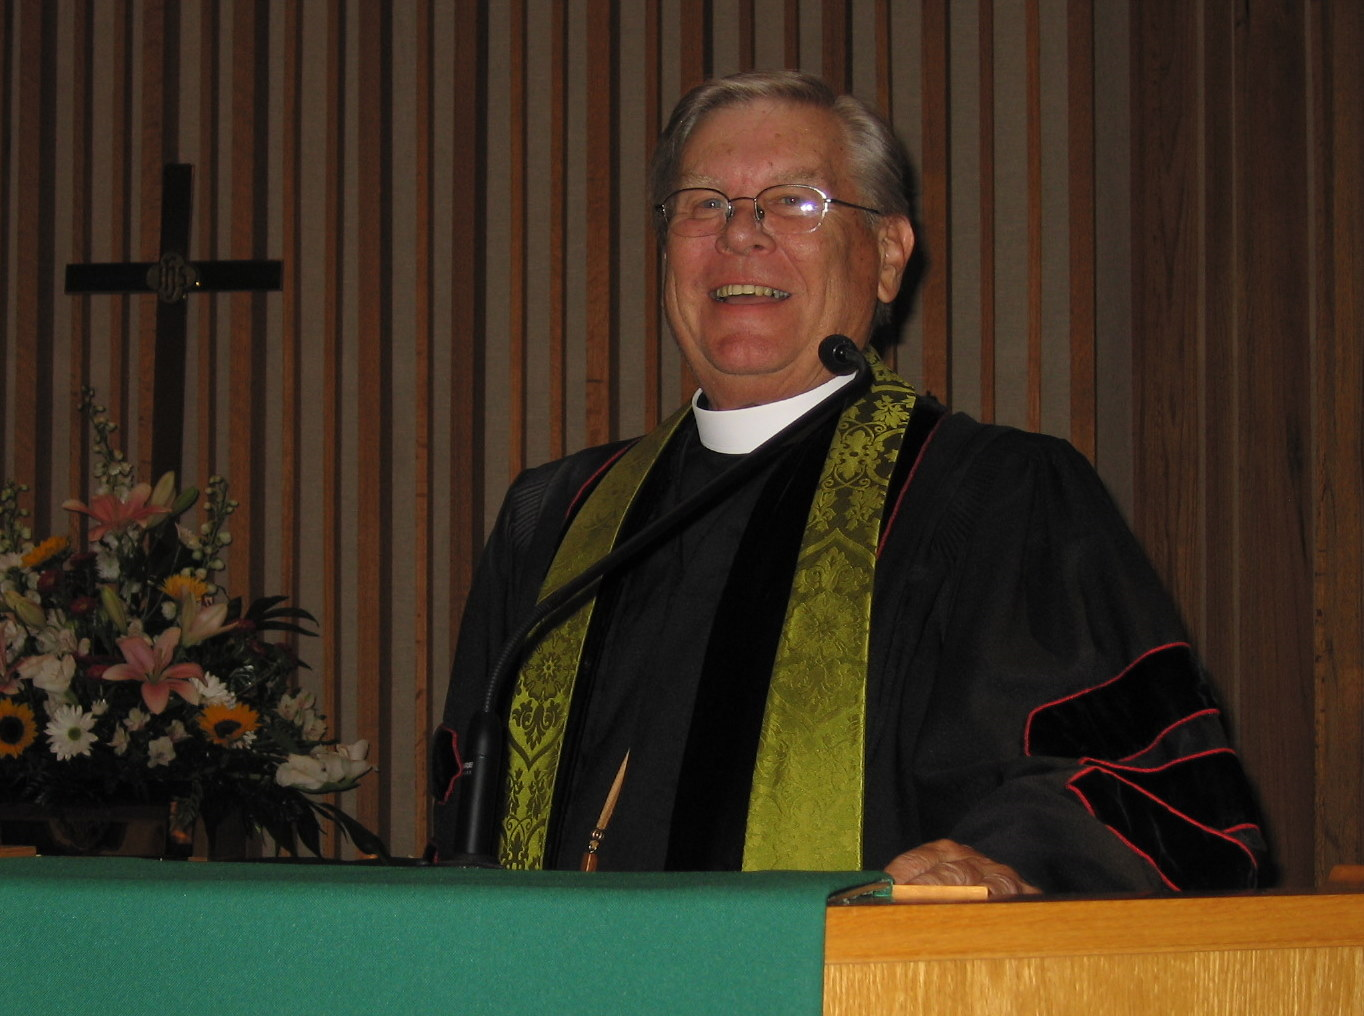 DEL in the pulpit